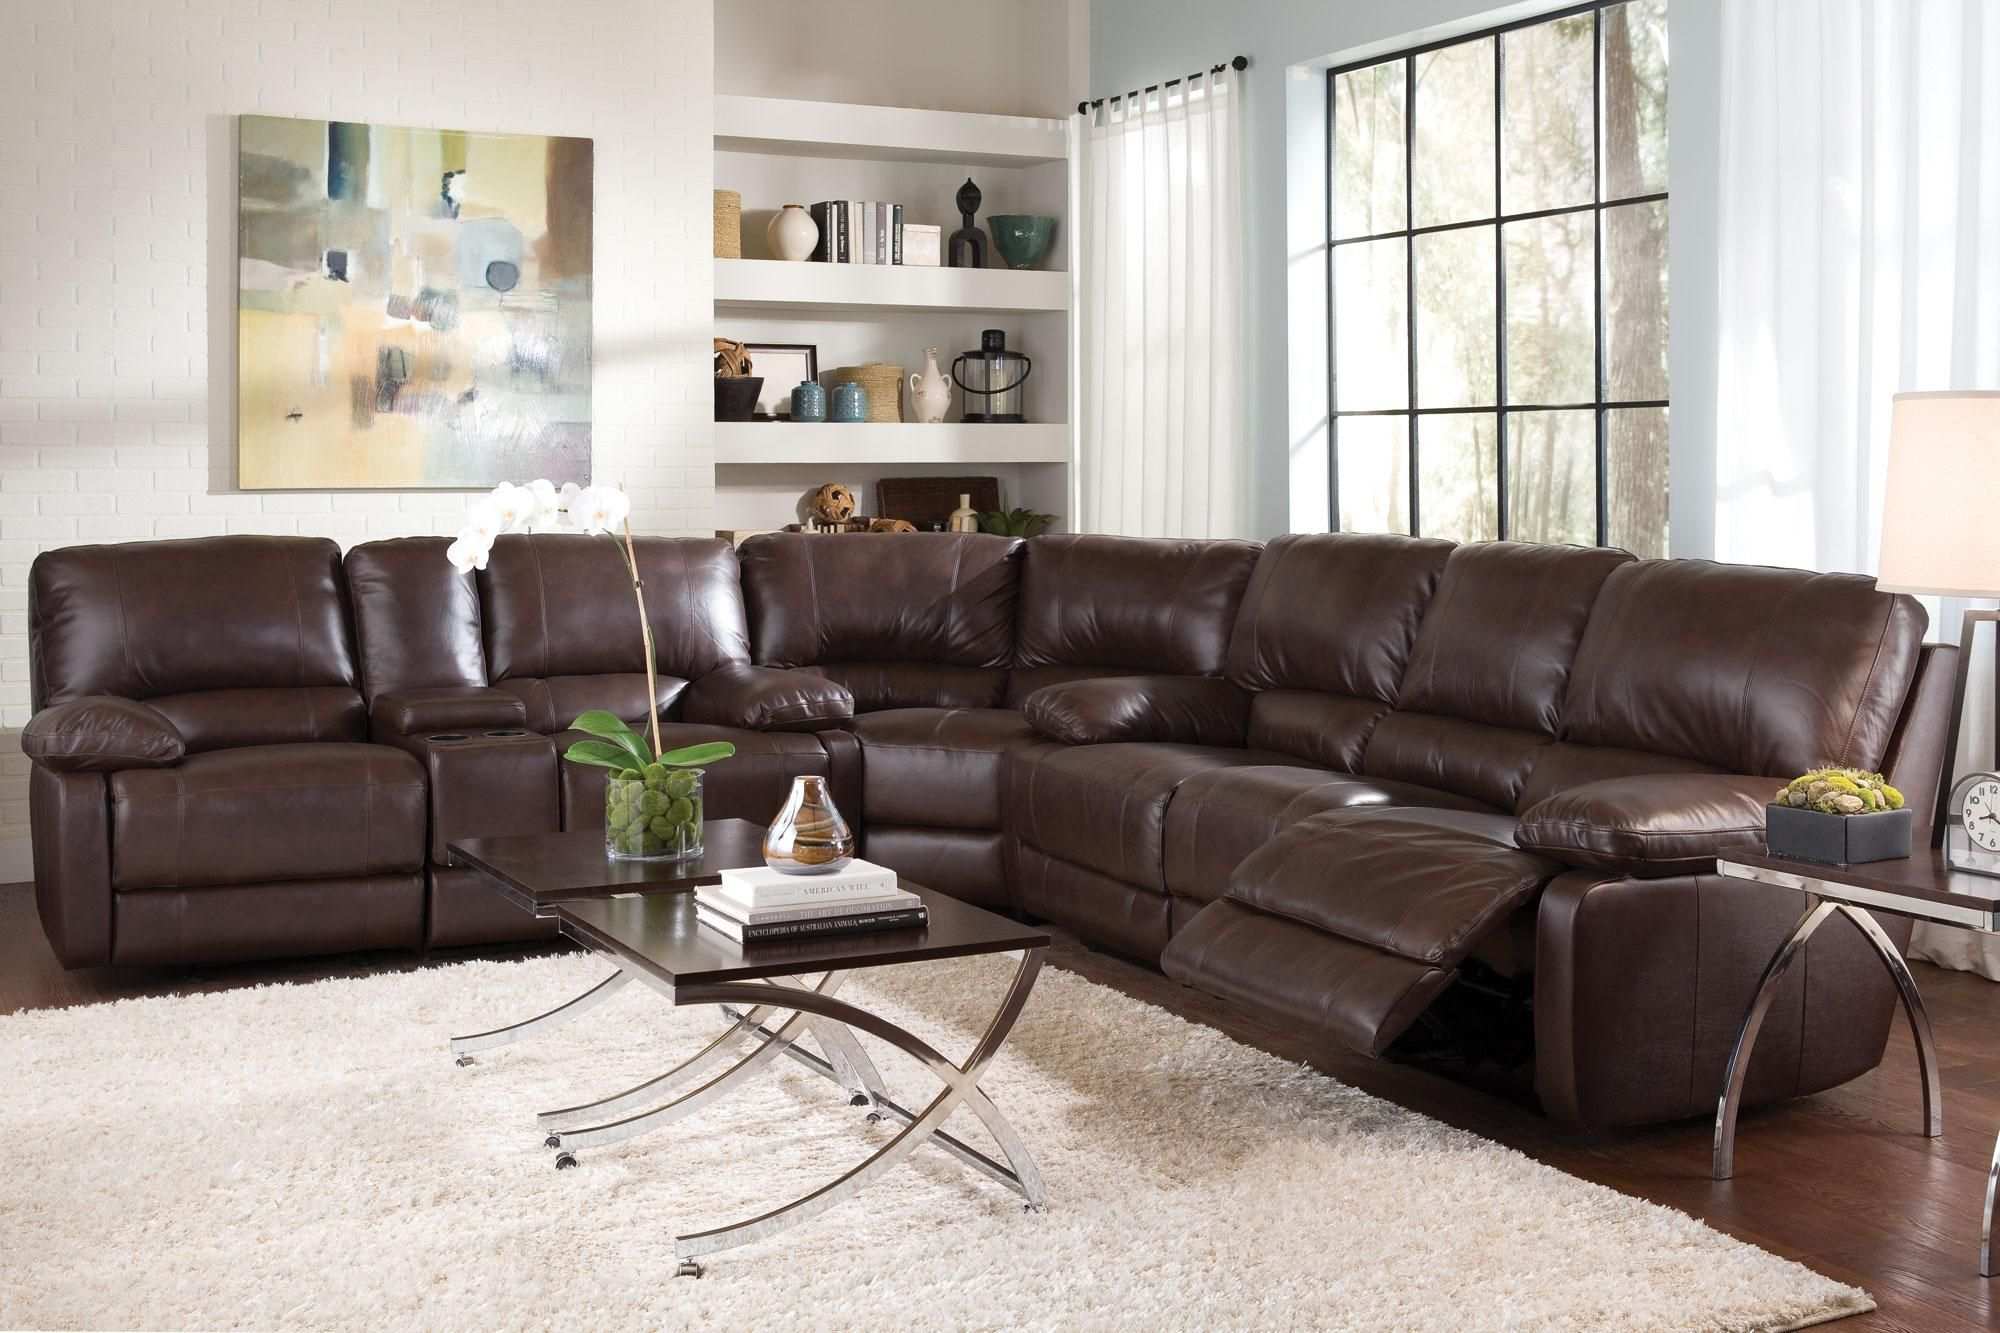 With Style And Comfort In Mind The Geri Cognac Brown Leather Sectional I Sectional Sofa With Recliner Leather Sectional Sofas Leather Reclining Sectional Sofa